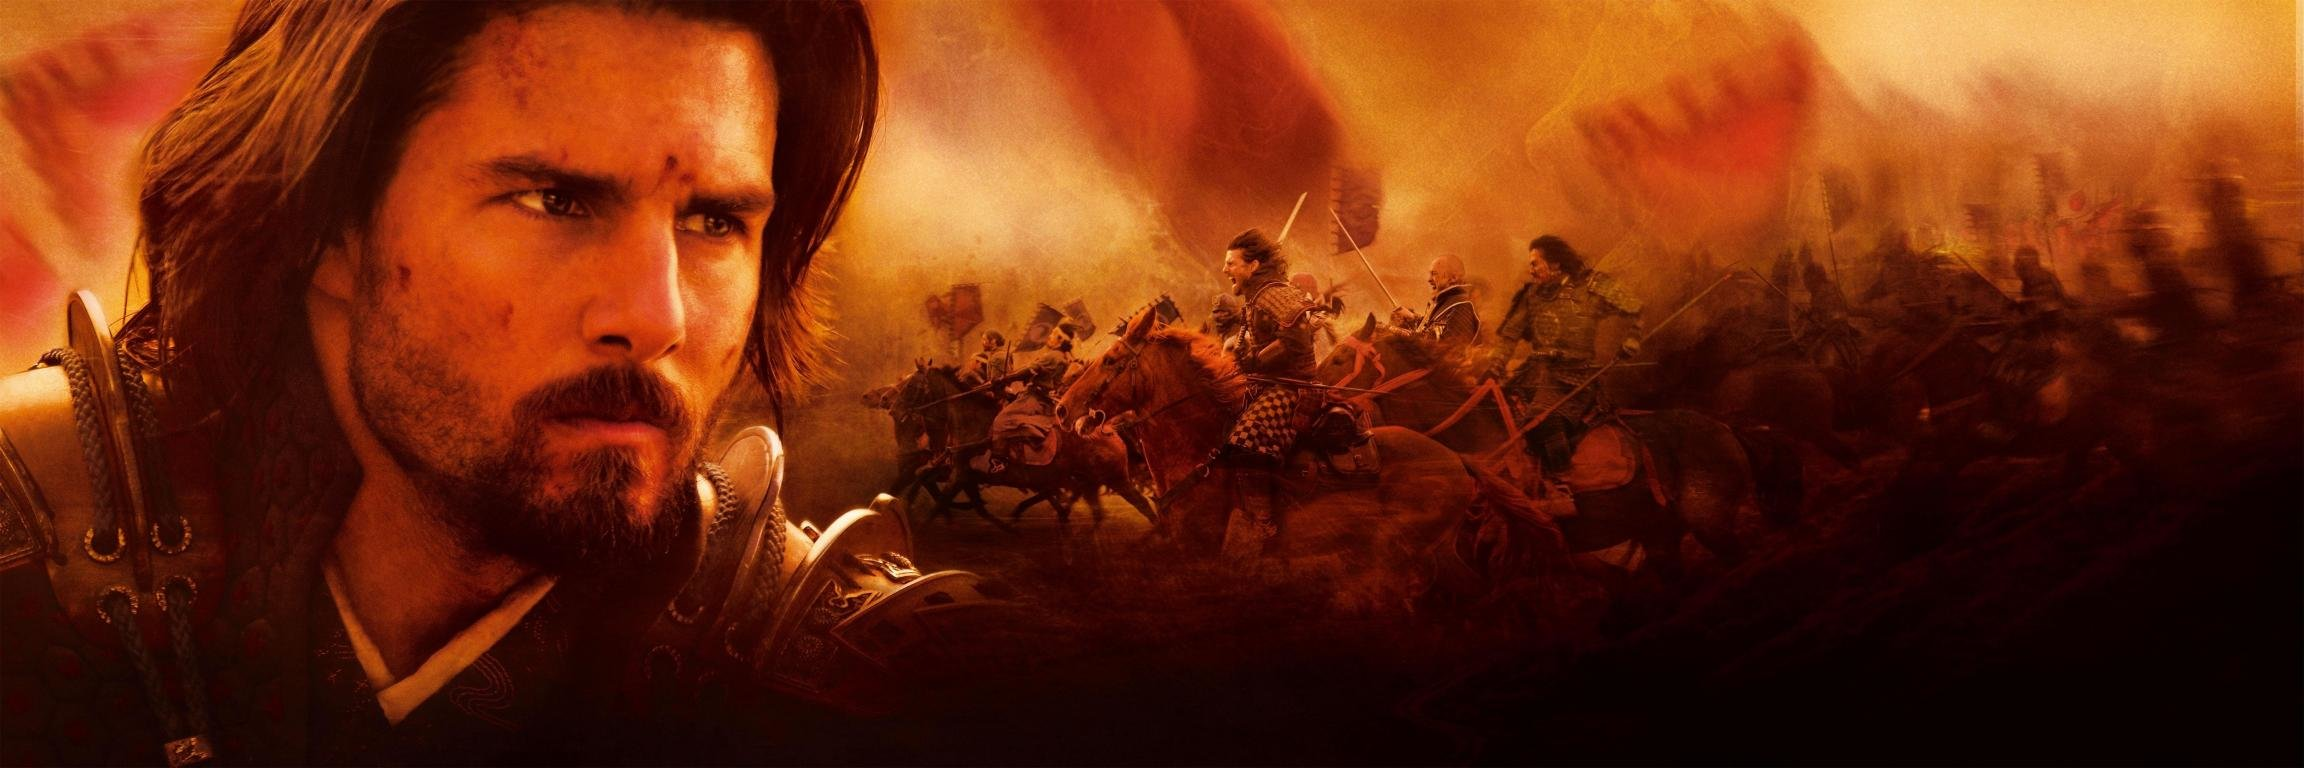 Free download The Last Samurai wallpaper ID:456758 dual monitor 2304x768 for PC